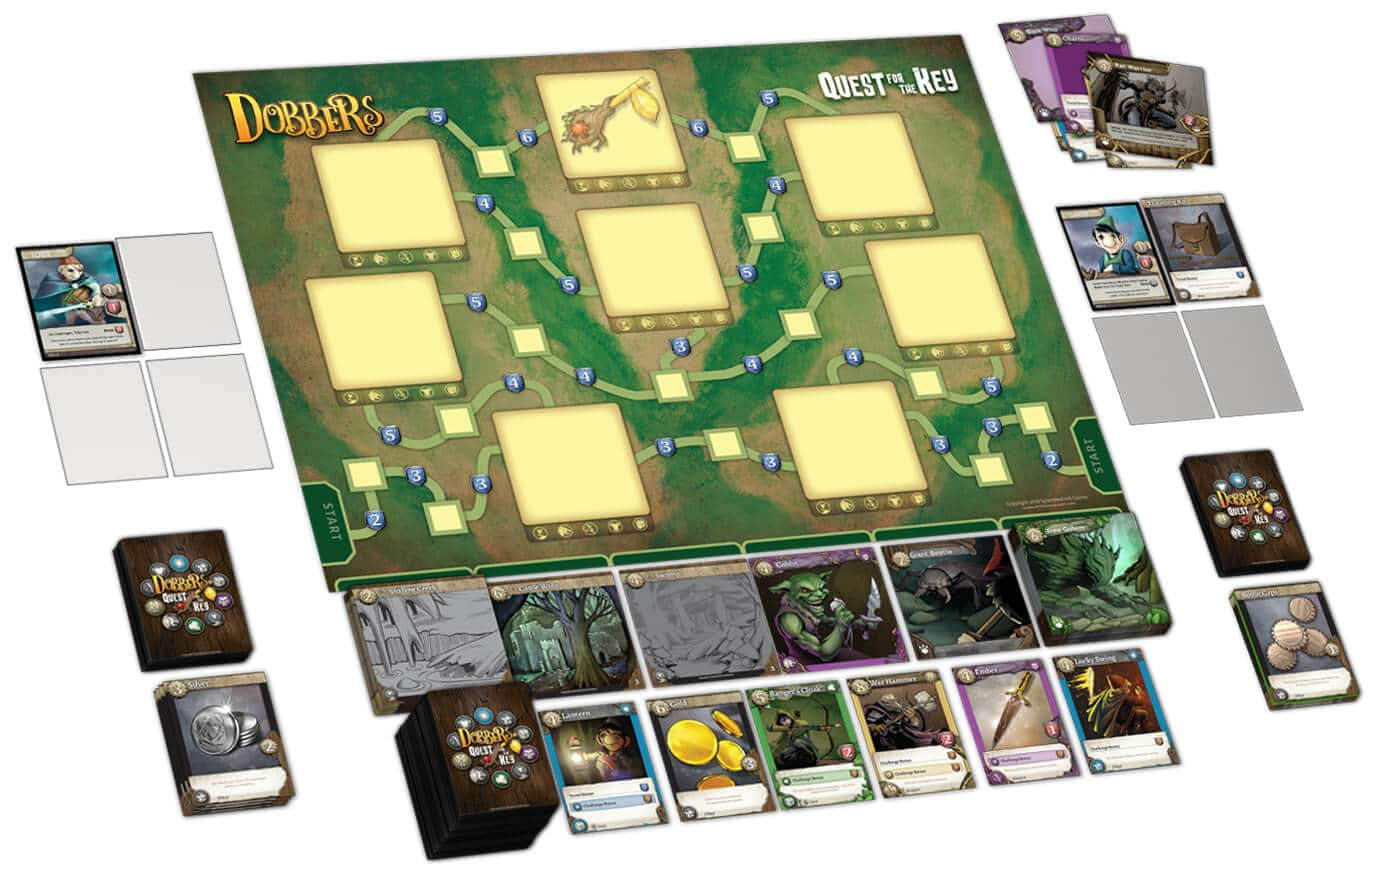 Kickstarter Campaign of the Week: Dobbers: Quest for the Key